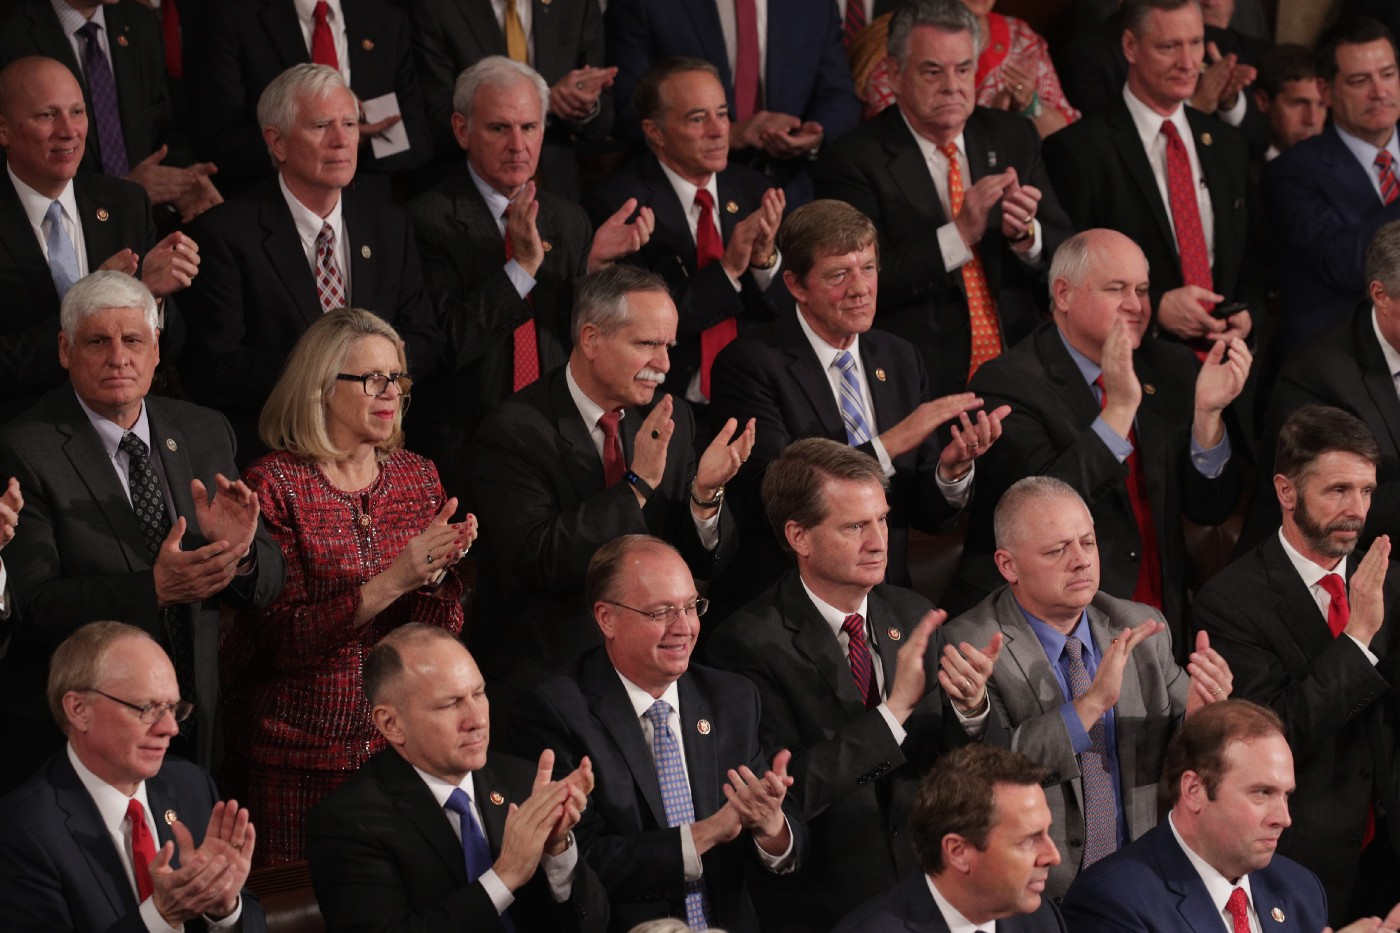 Lawmakers watch the State of the Union address in the chamber of the U.S. House of Representatives at the Capitol Building